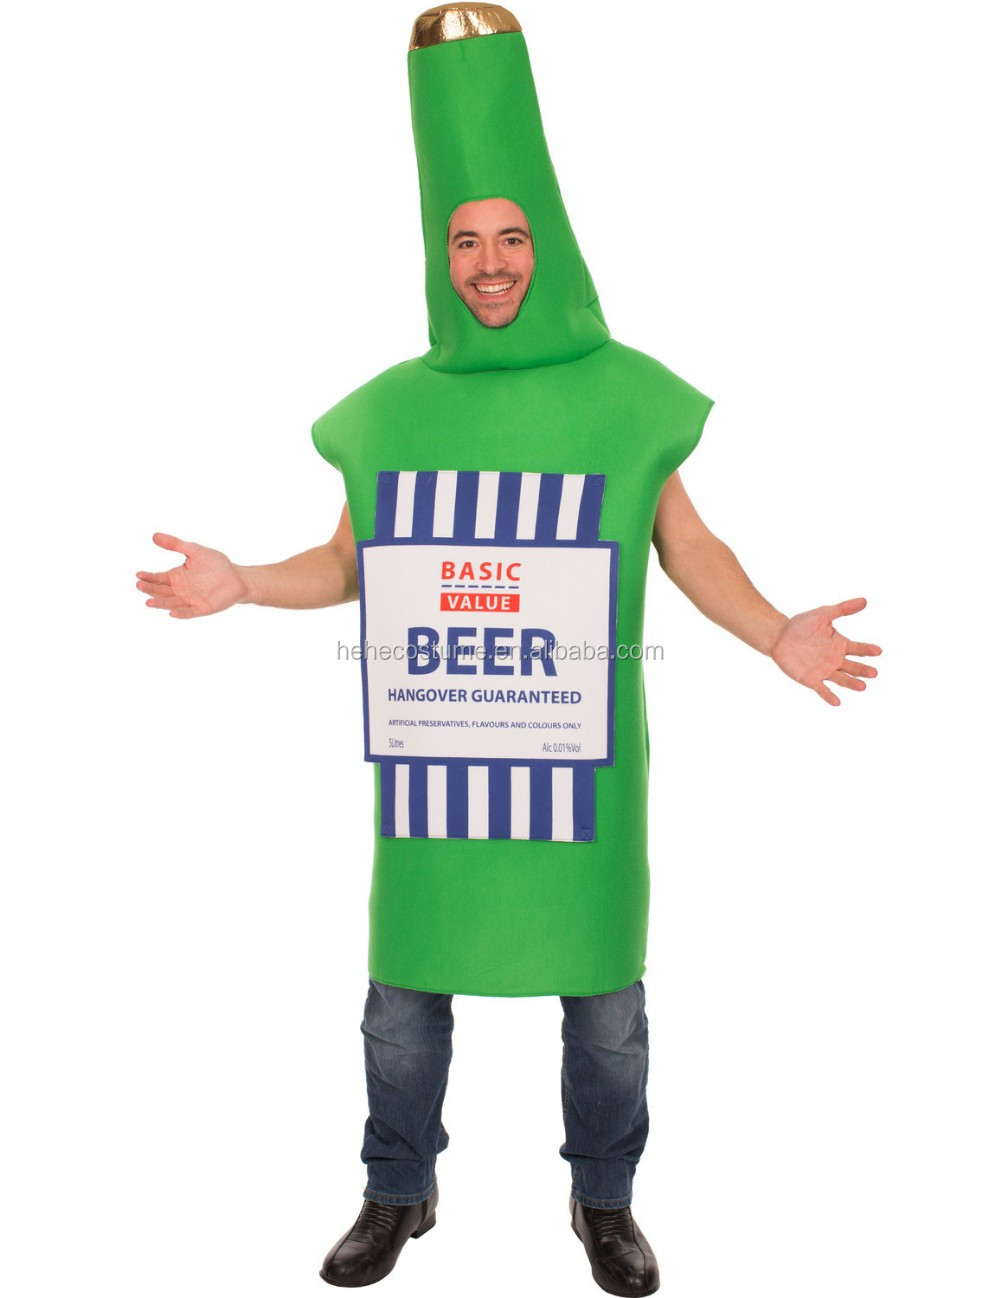 Wife Beater Beer Bottle Costume